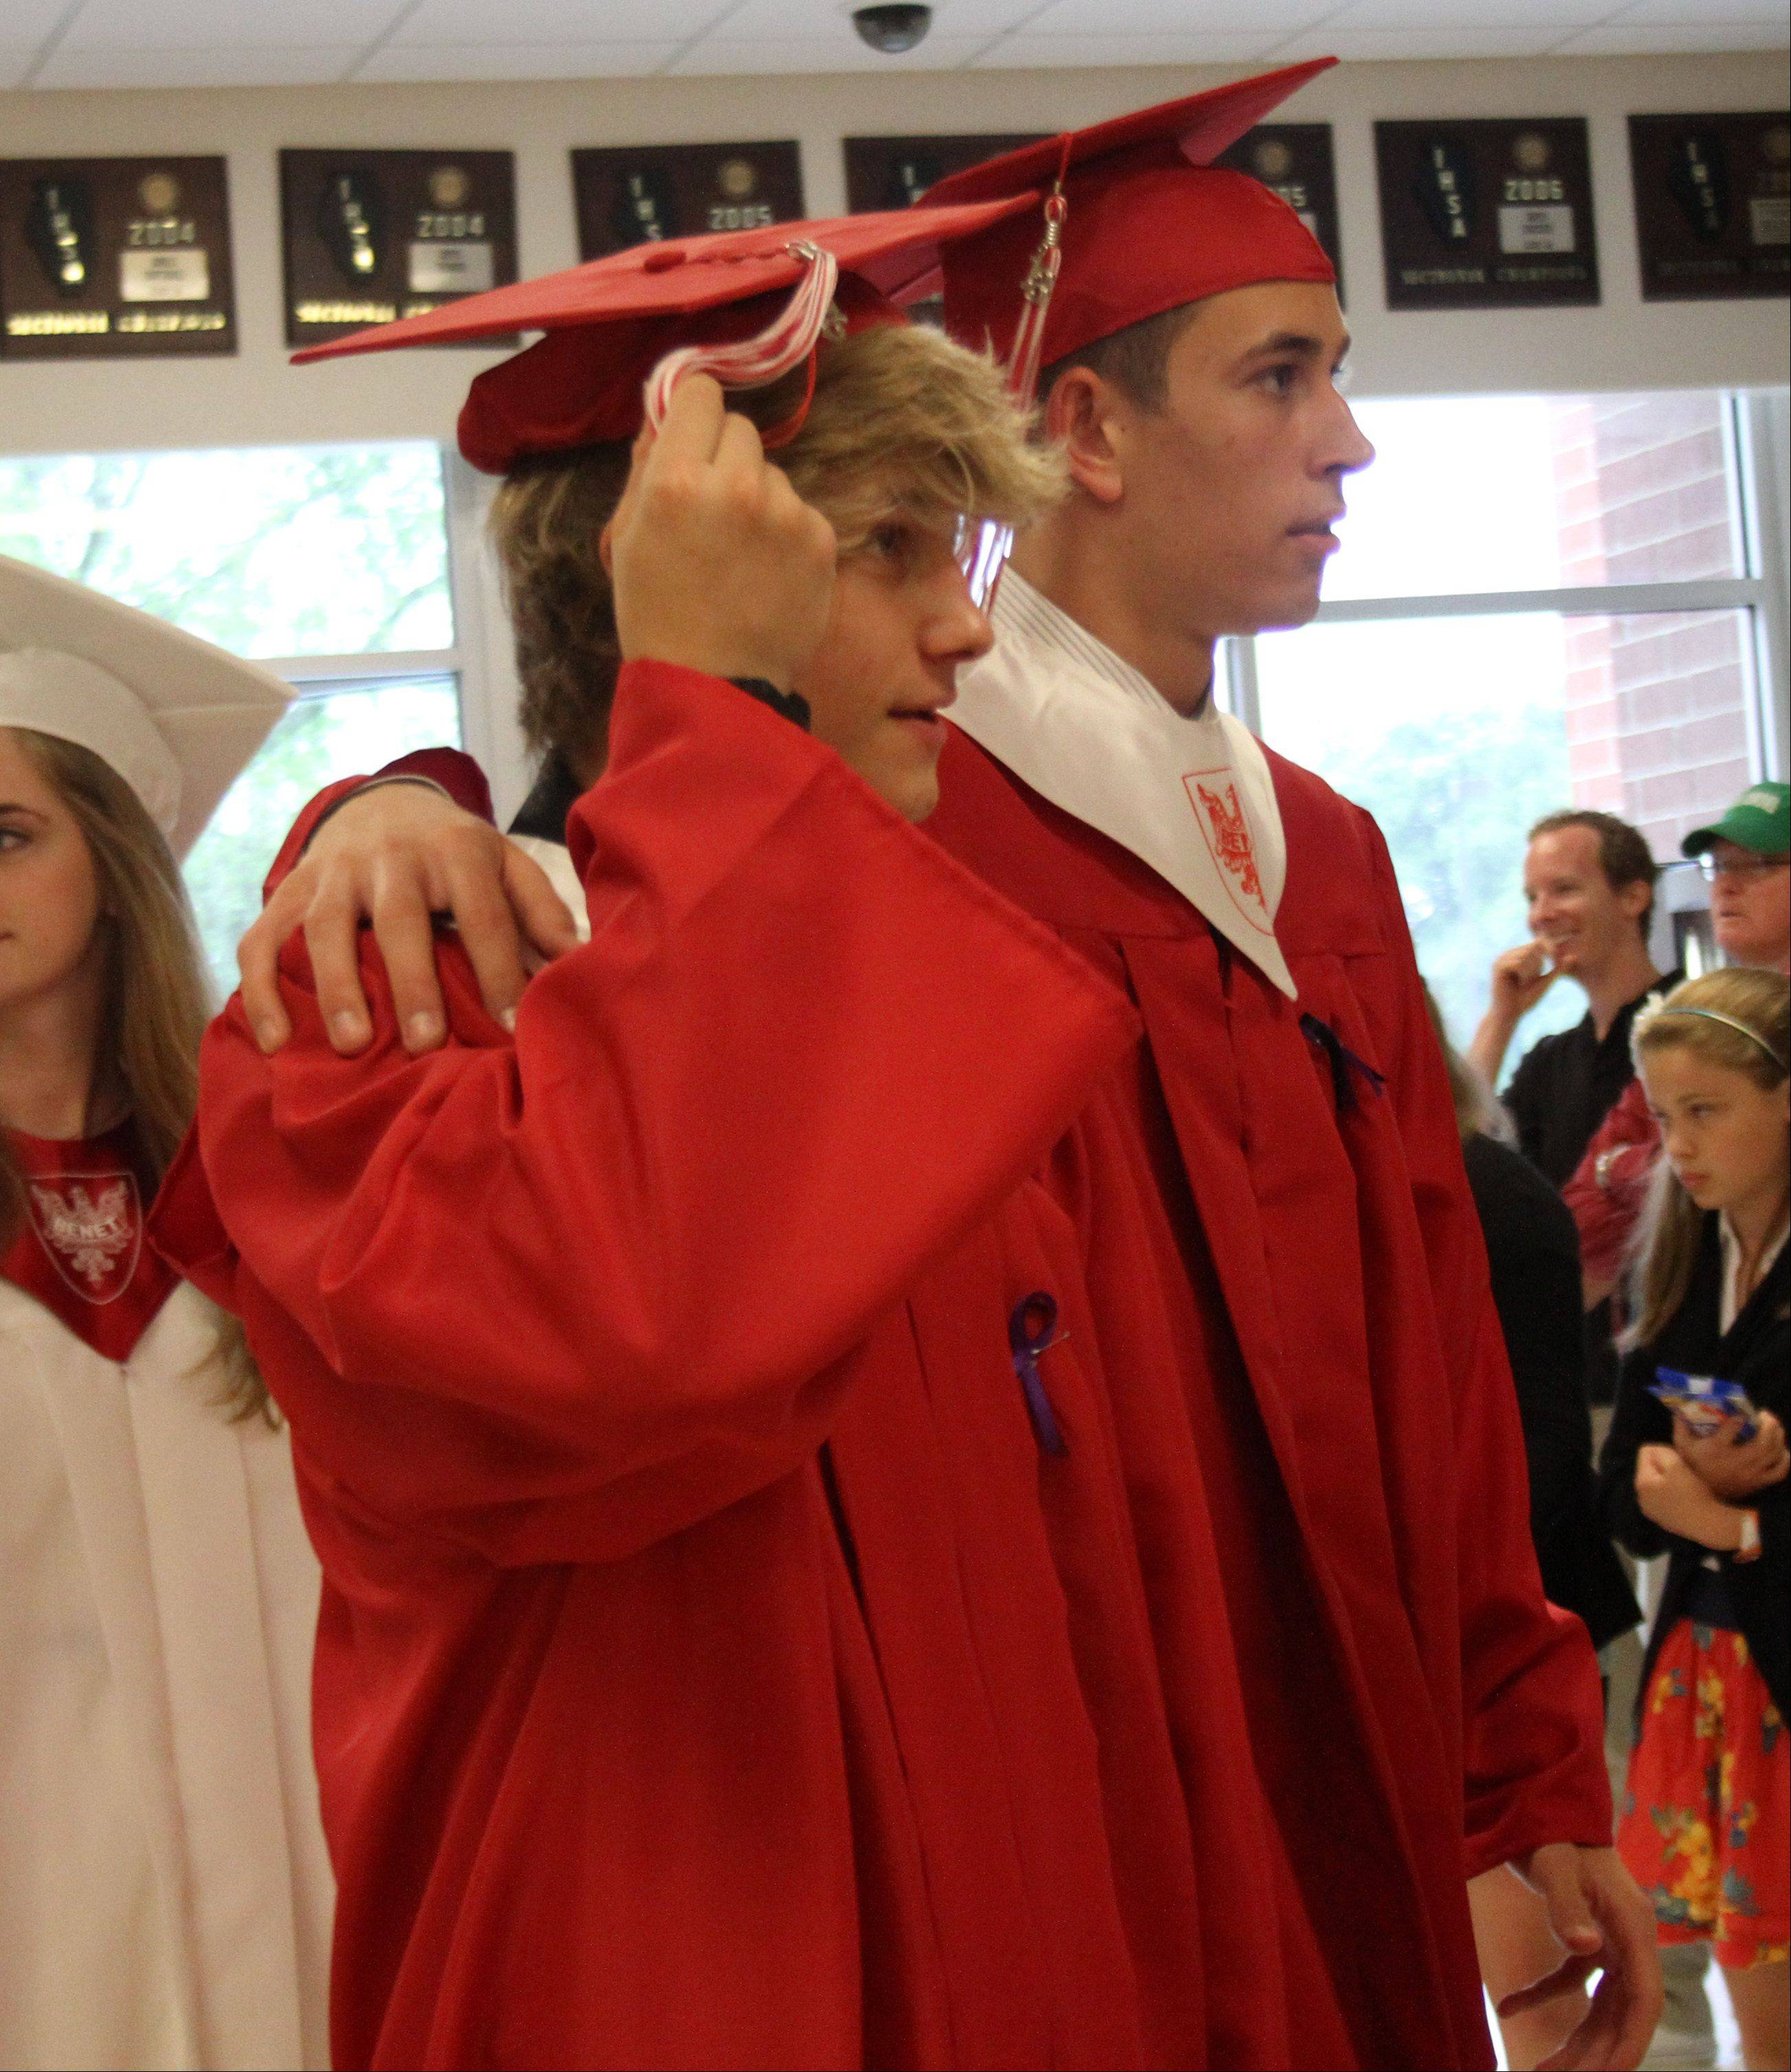 Images from the Benet Academy graduation on Sunday, June 2 at the school in Lisle.